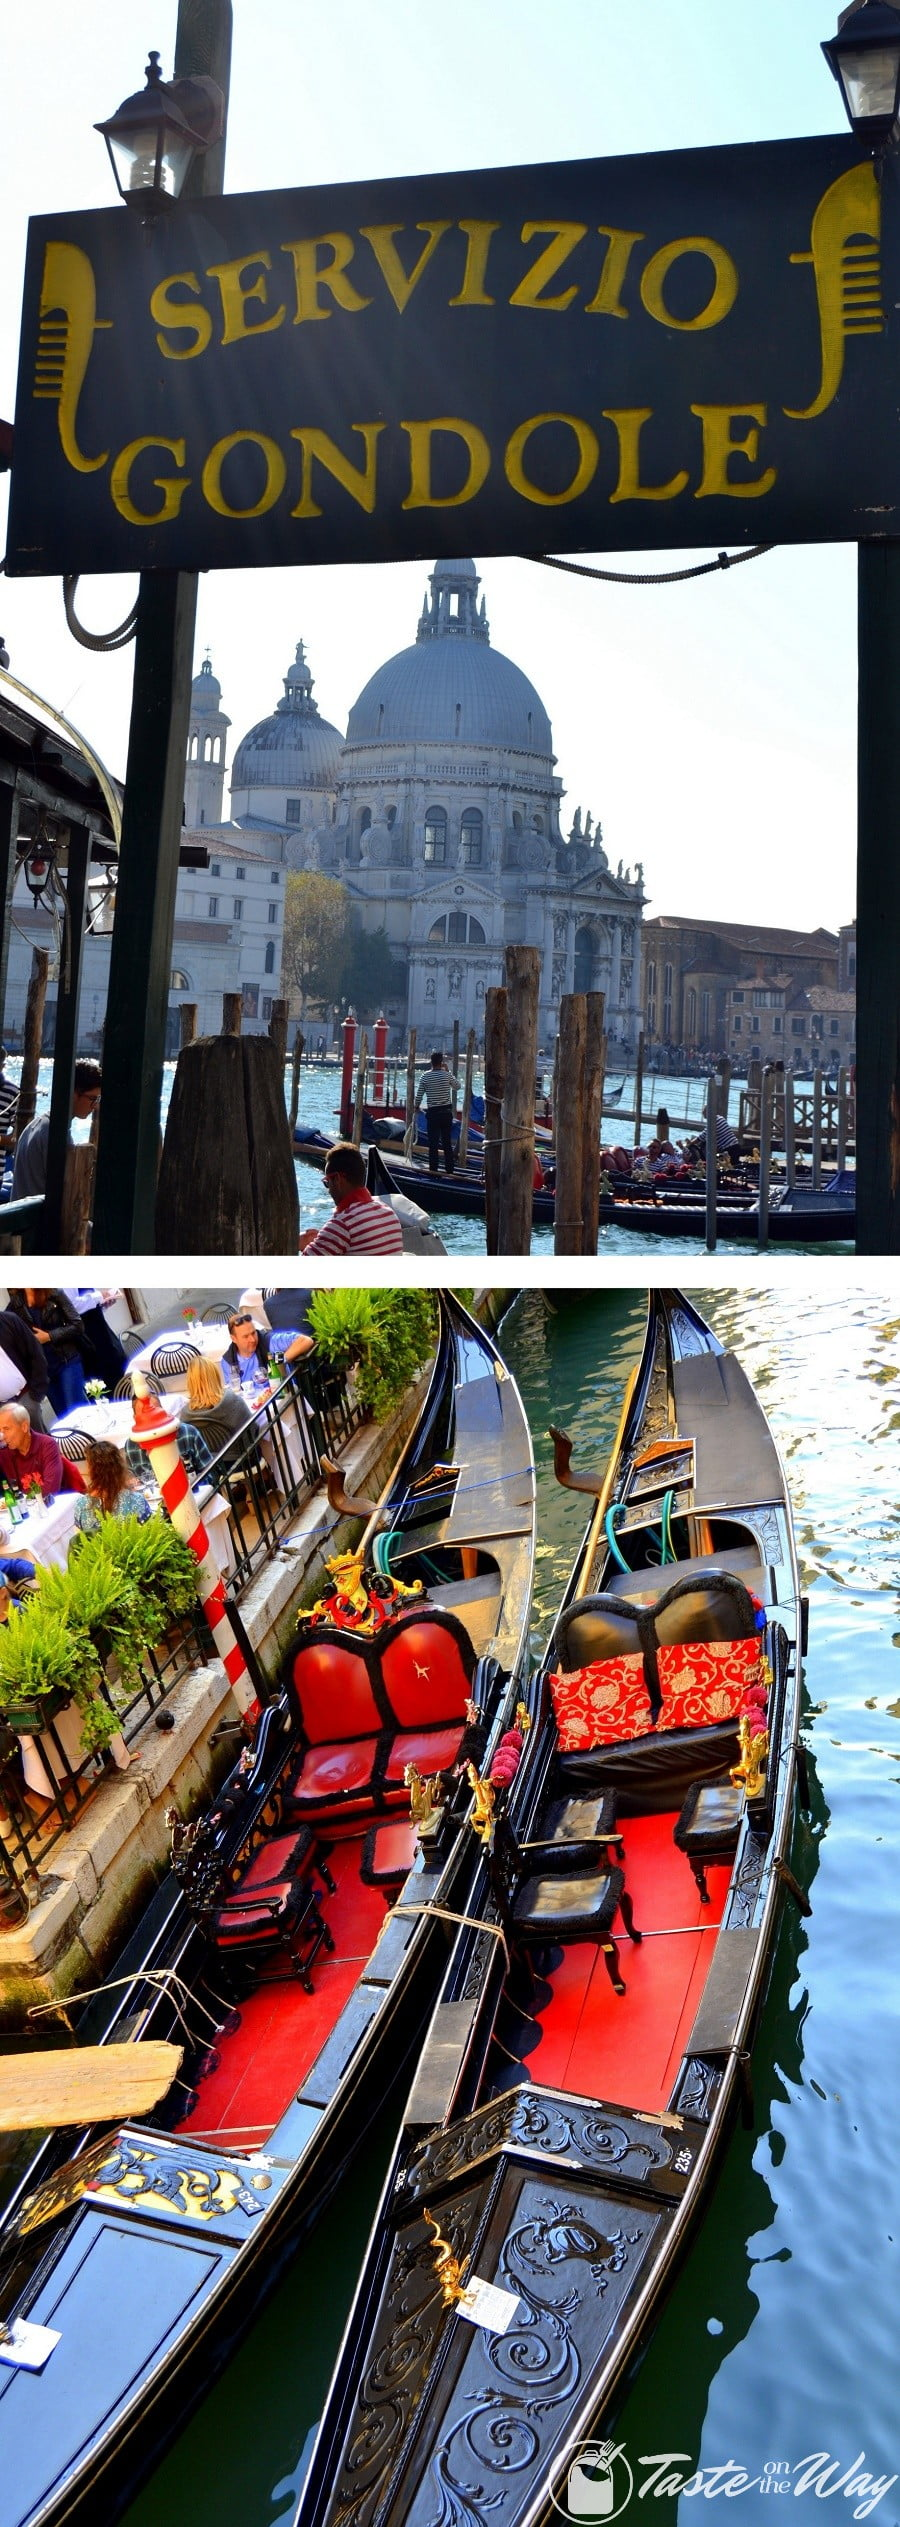 Check out these awesome pictures of gondolas in #Venice #travel #photography @tasteontheway